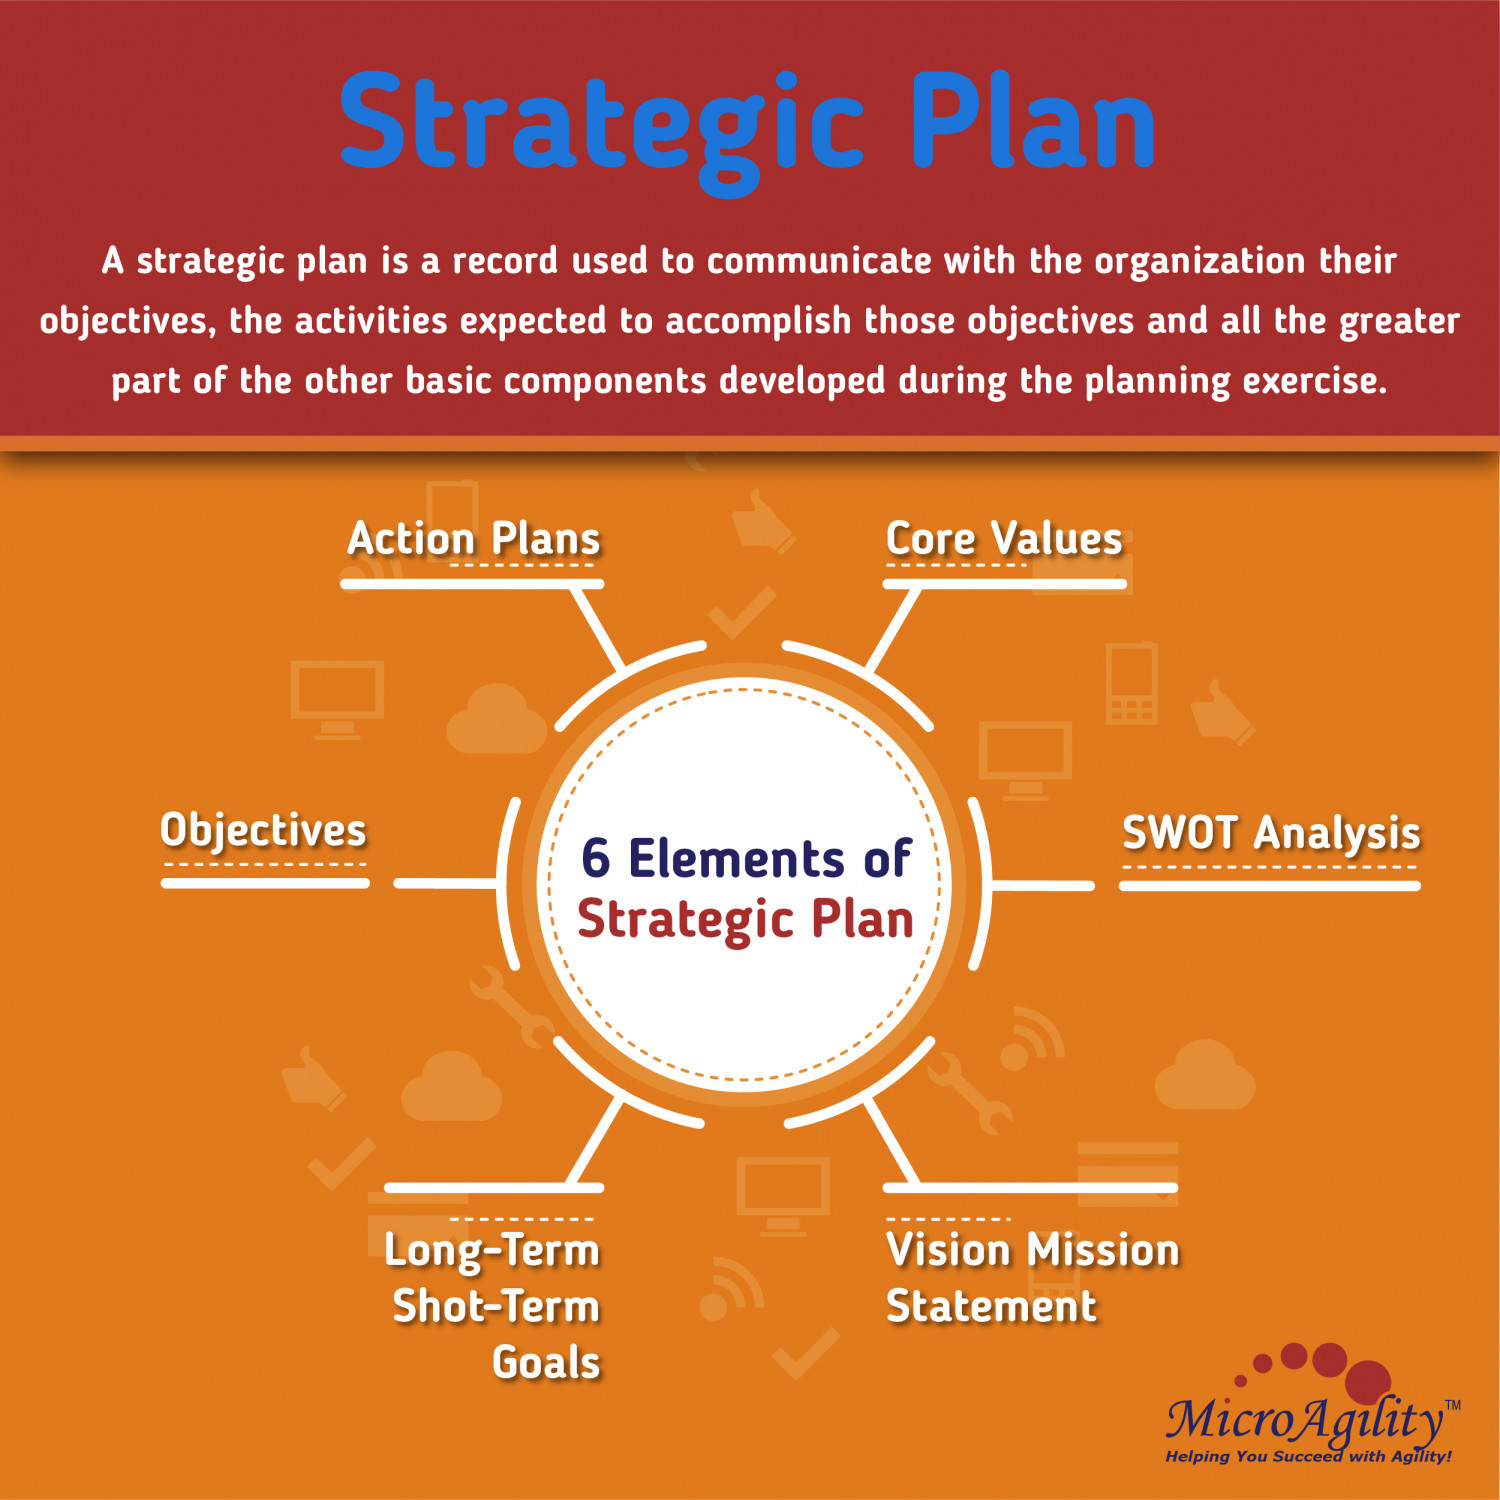 6 Elements of Strategic Plan Infographic